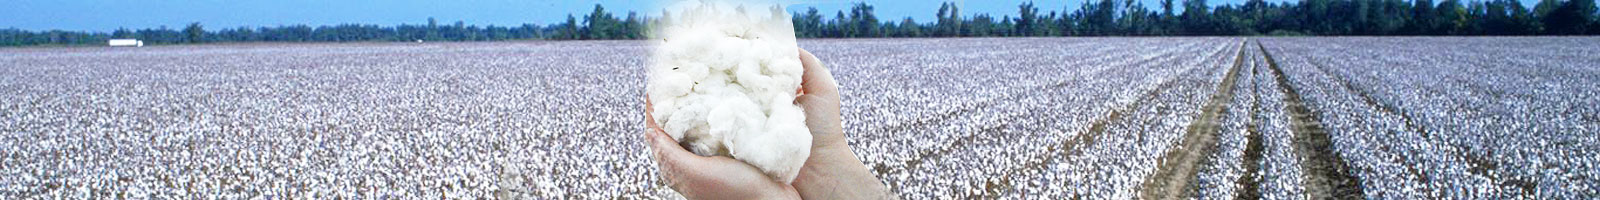 Wash Cotton Seed Oil, Wash Cotton Oil, Wash Cottonseed Oil, Wash Cottonseed Oils, Wash Cotton Seed Oil Supplier,Manufacturer of Wash Cotton Oil in Gujarat,India